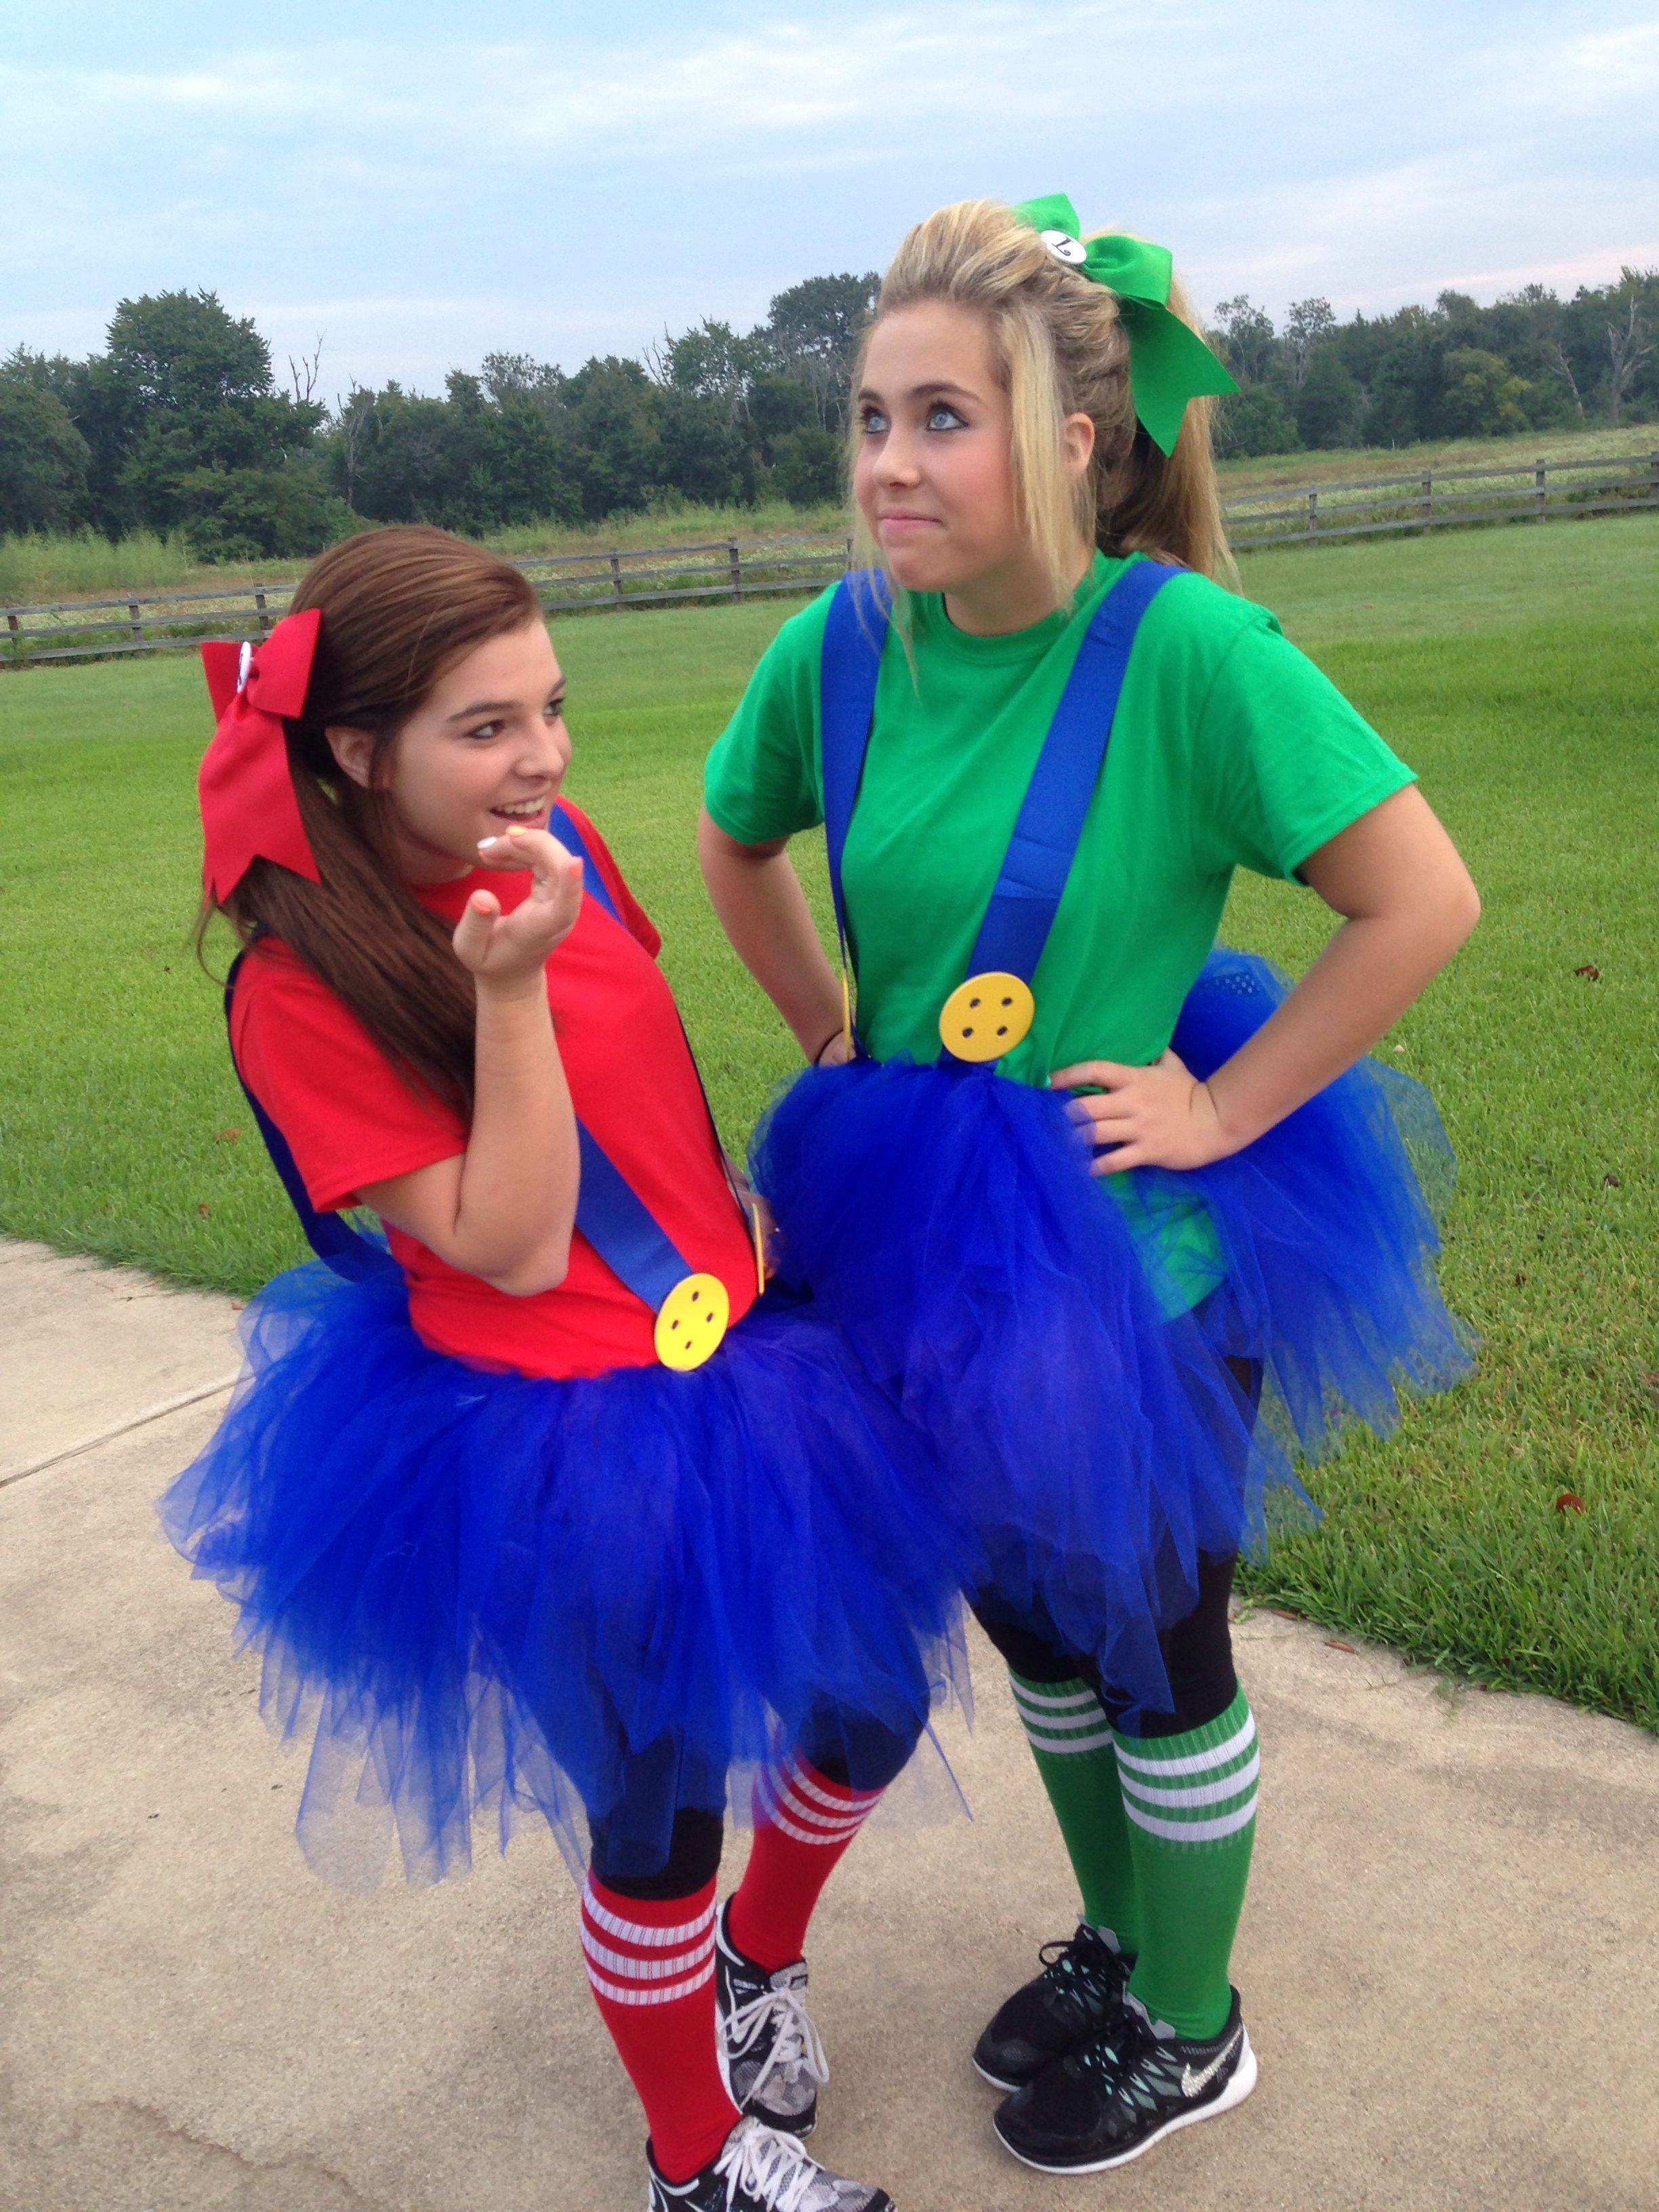 Twin Day for spirit week / homecoming week. Mario and Luigi...fraternal twins! DIY now sew tutu, ribbon suspenders, wooden circles with holes drilled and painted yellow to look like giant yellow button, bows with character initial. Easy and cute costume for school. #characterdayspiritweek Twin Day for spirit week / homecoming week. Mario and Luigi...fraternal twins! DIY now sew tutu, ribbon suspenders, wooden circles with holes drilled and painted yellow to look like giant yellow button, bows wi #characterdayspiritweek